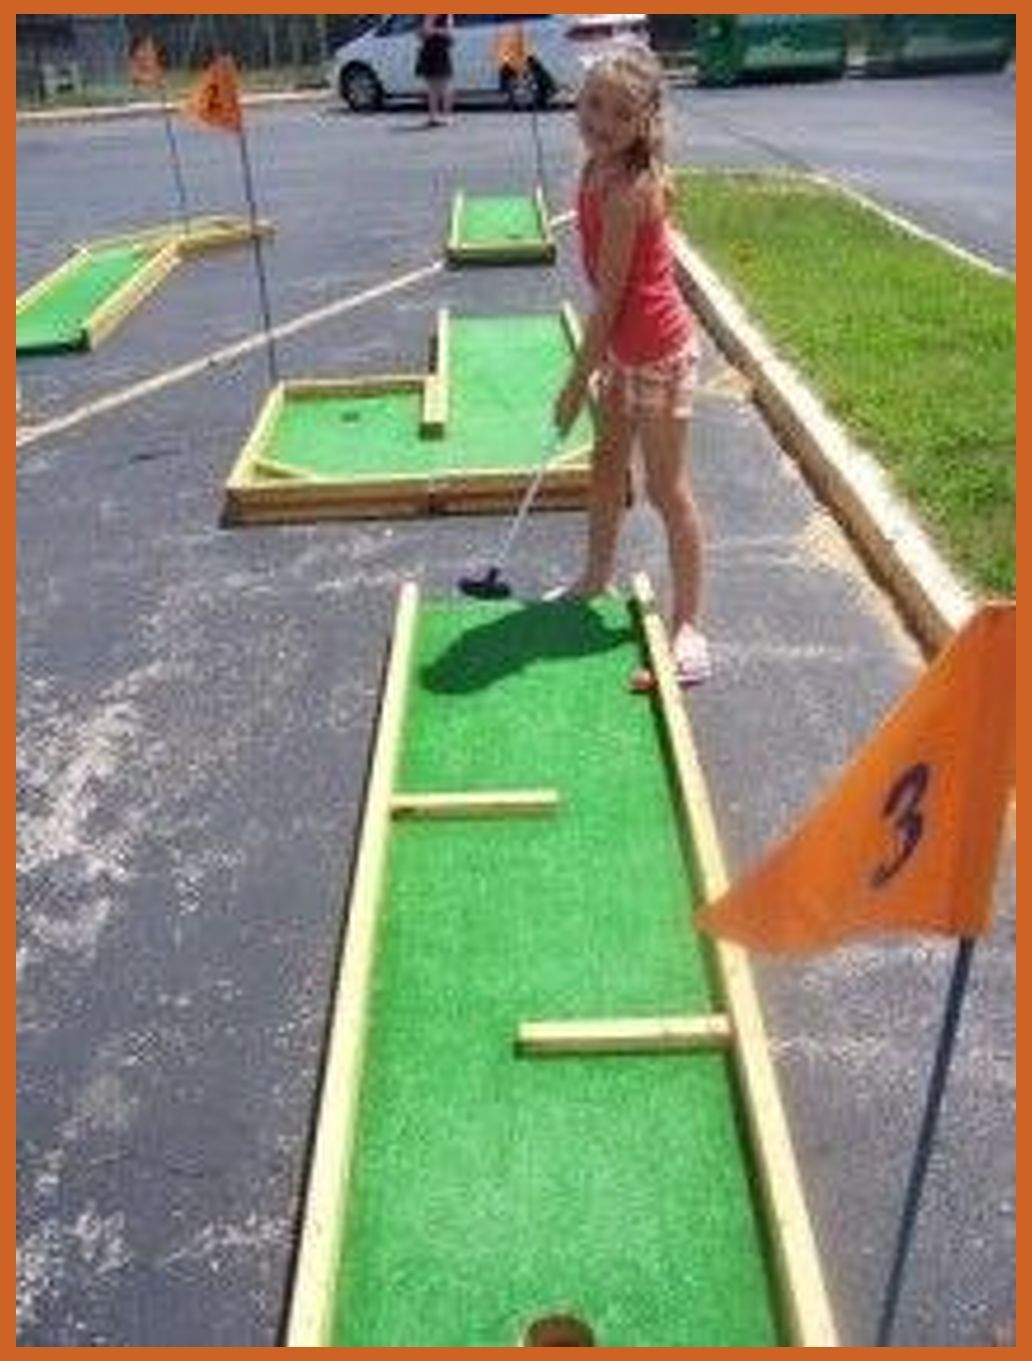 9 Hole Mini Golf Our Mini Golf Course Is Great For Tournaments For Young And Old Carnivallady Com Backyard Putting G In 2020 Mini Golf Golf Diy Backyard Games Backyard mini golf kit